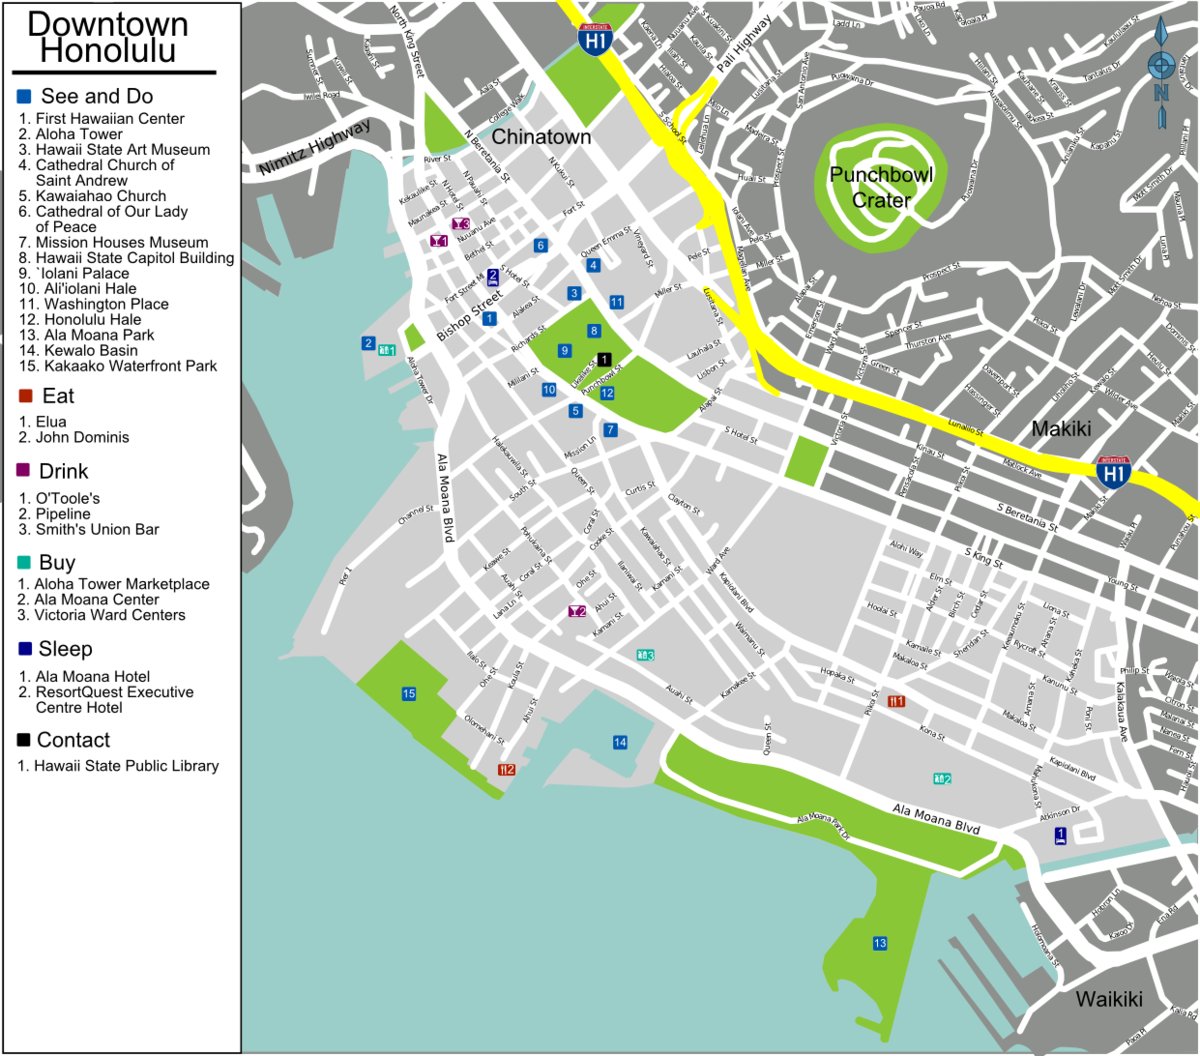 HonoluluDowntown Travel guide at Wikivoyage